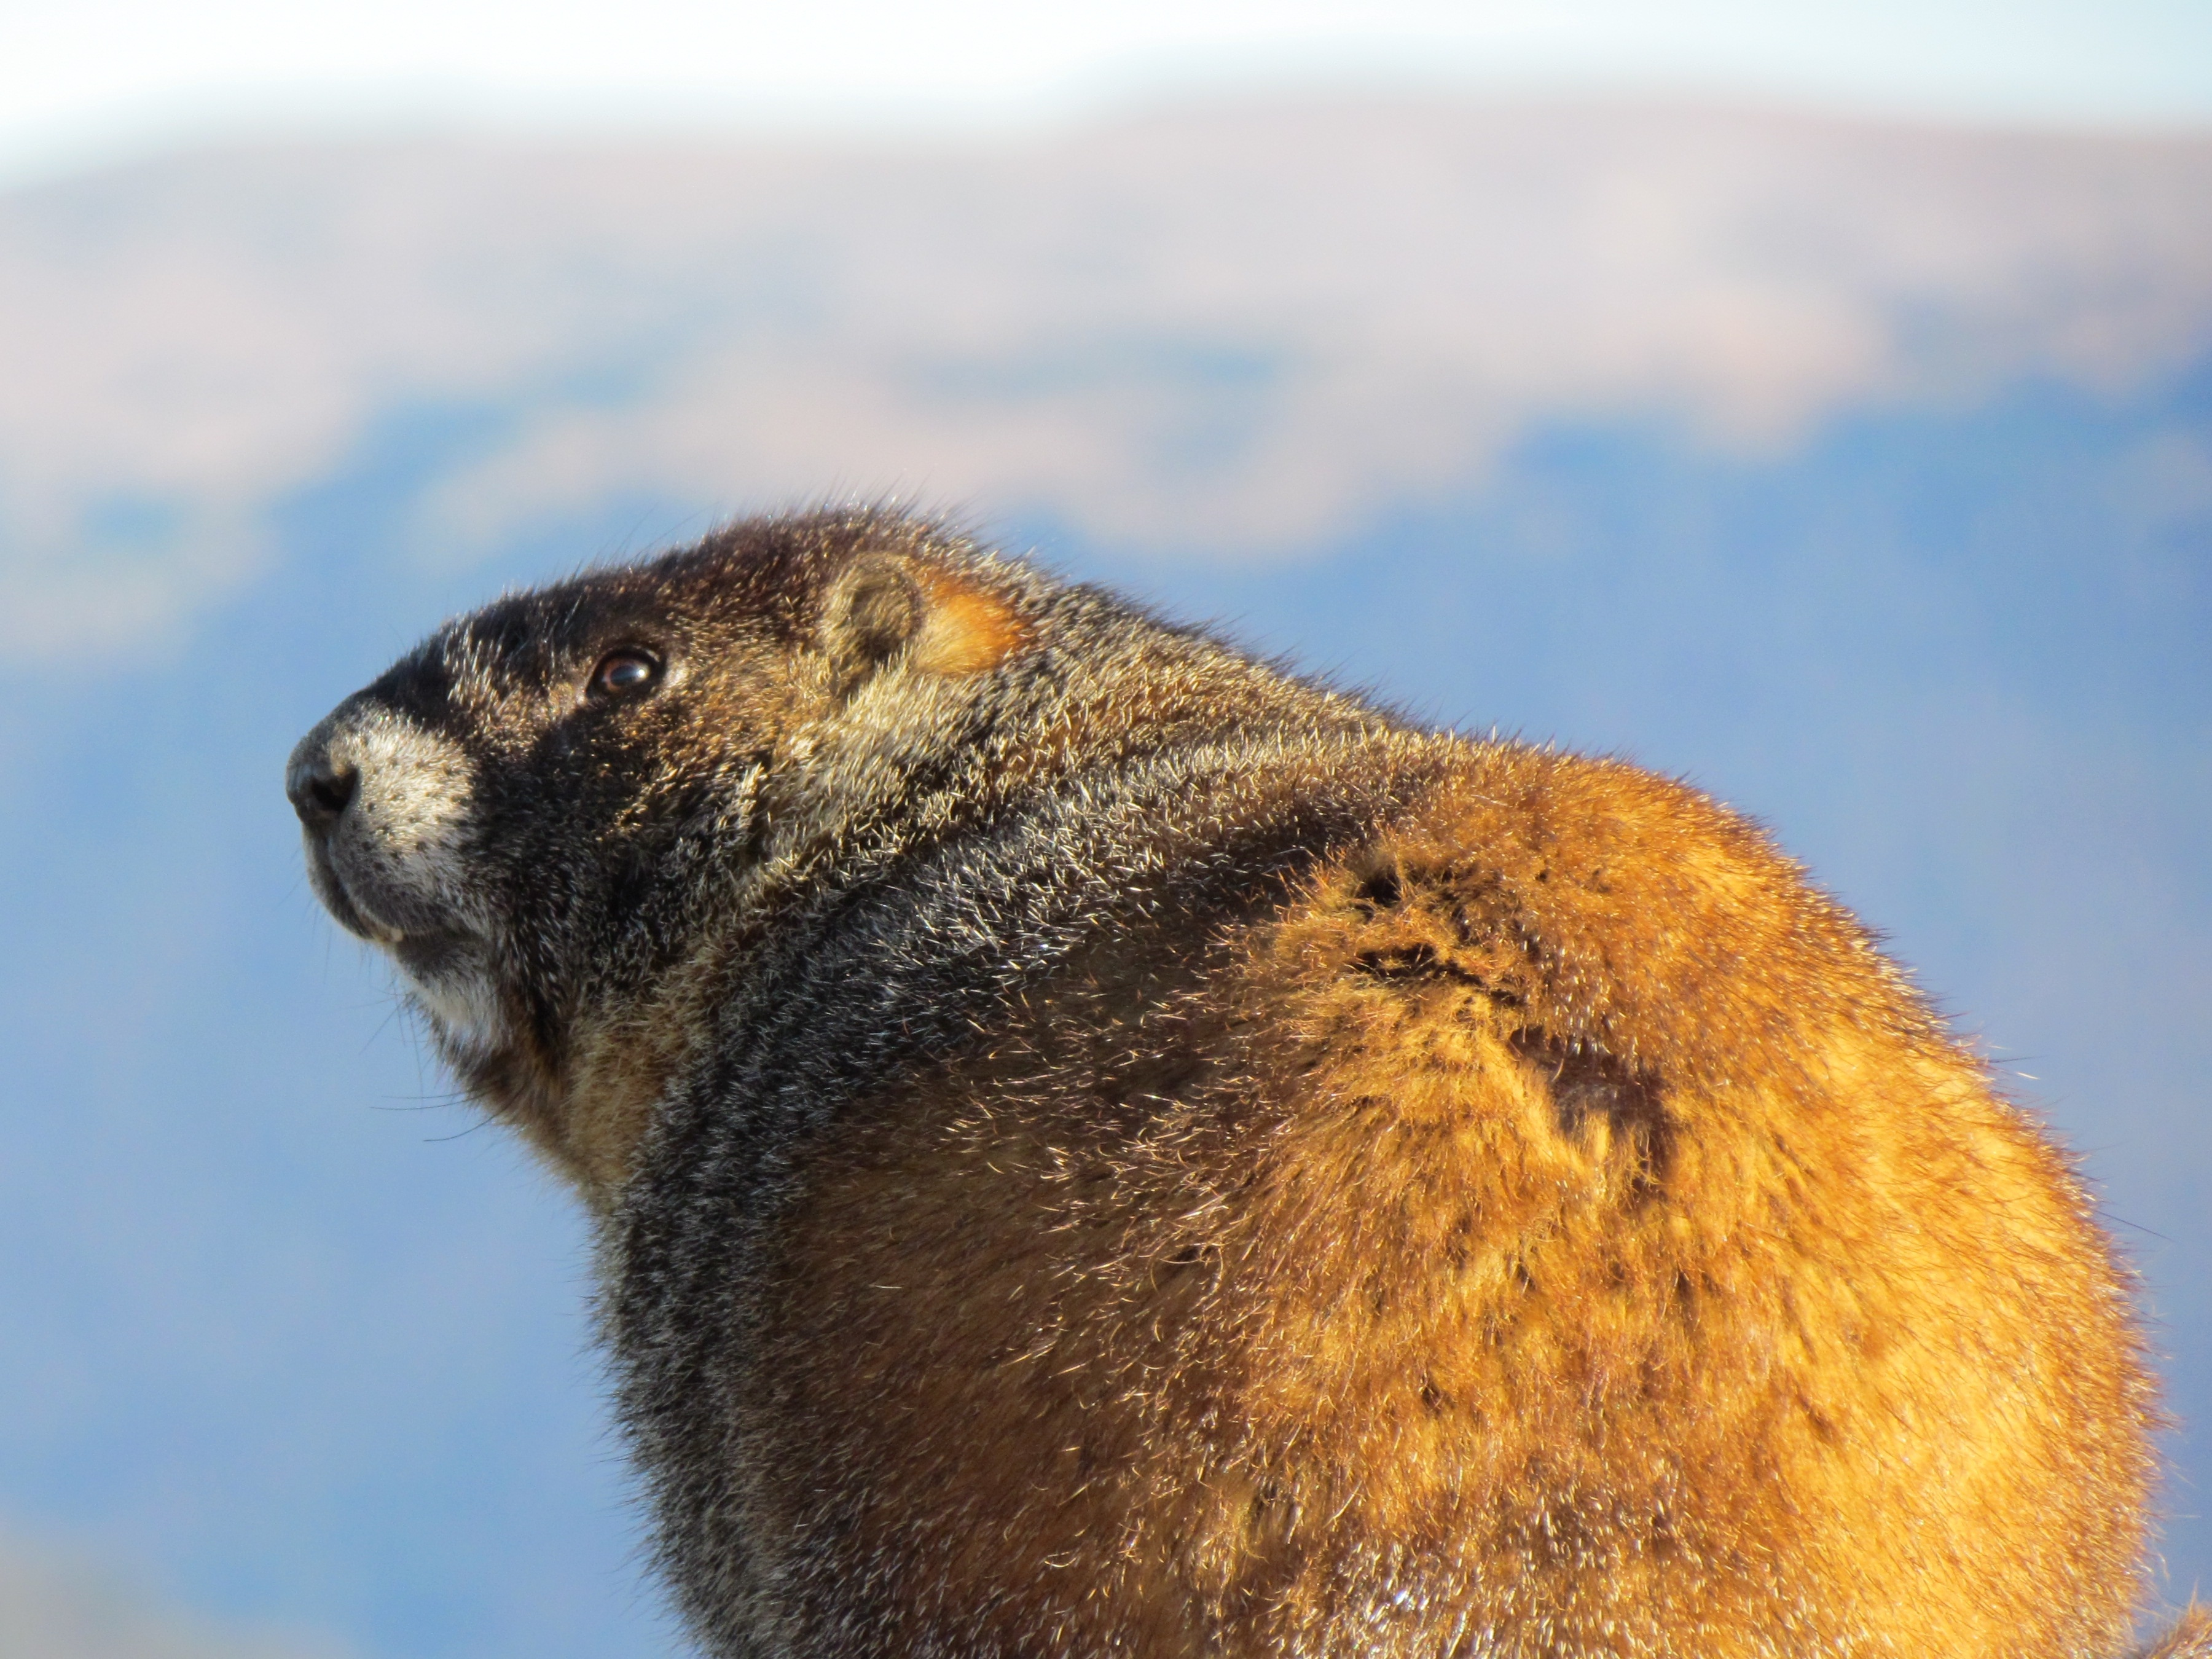 108001 download wallpaper Animals, Marmot, Fat, Thick, Cool screensavers and pictures for free